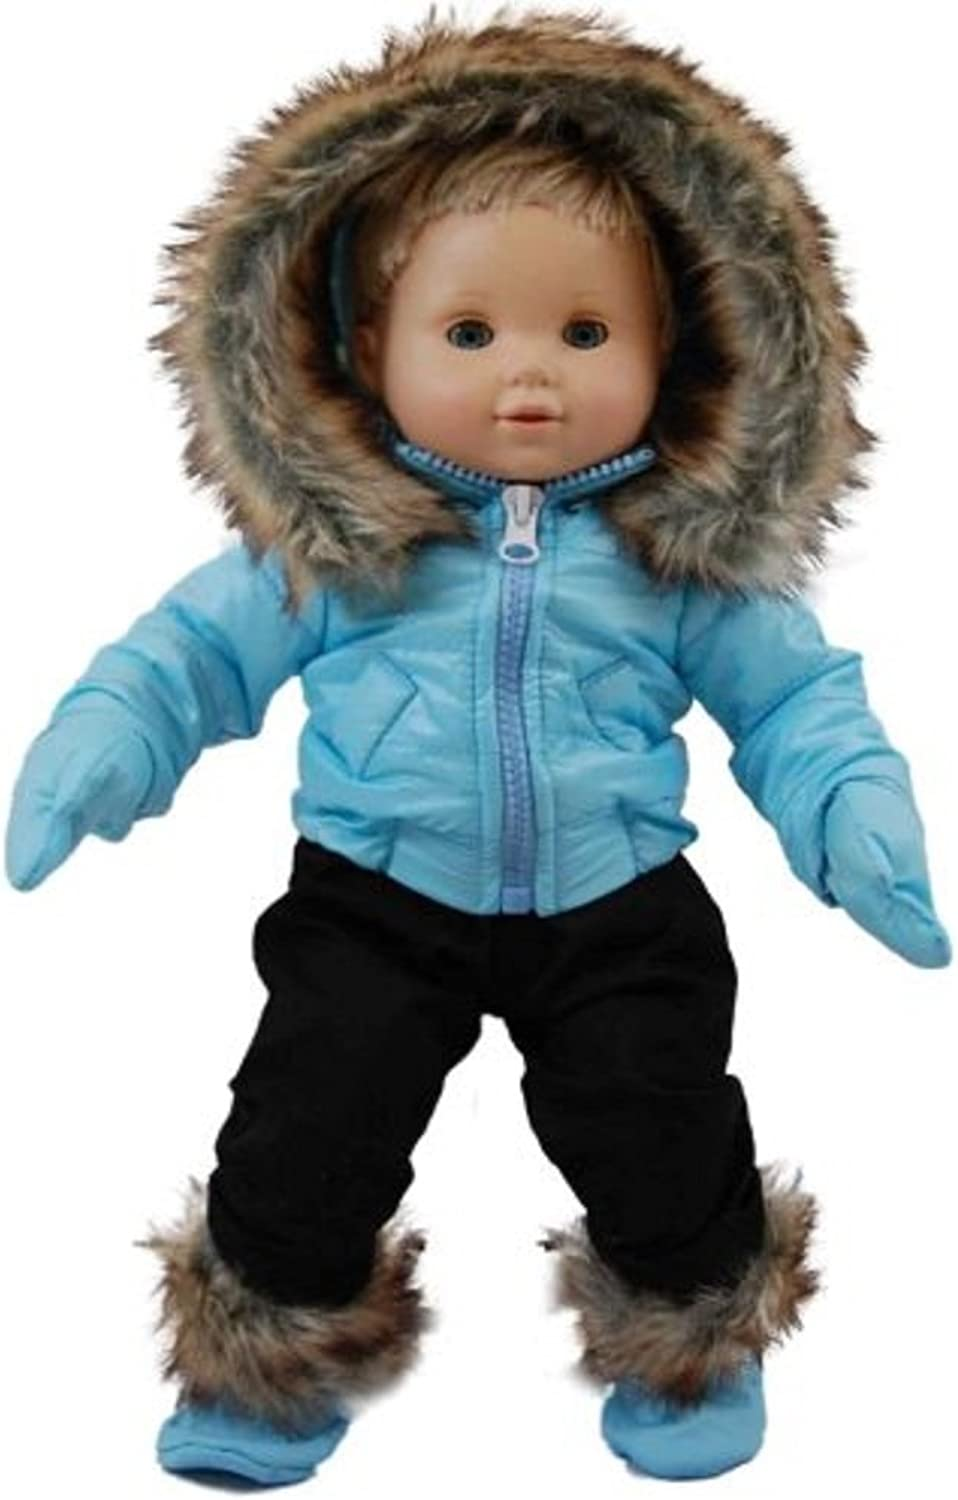 The Queen's Treasures bluee Snow Suit Outfit for 15-Inch American Girl Bitty Baby